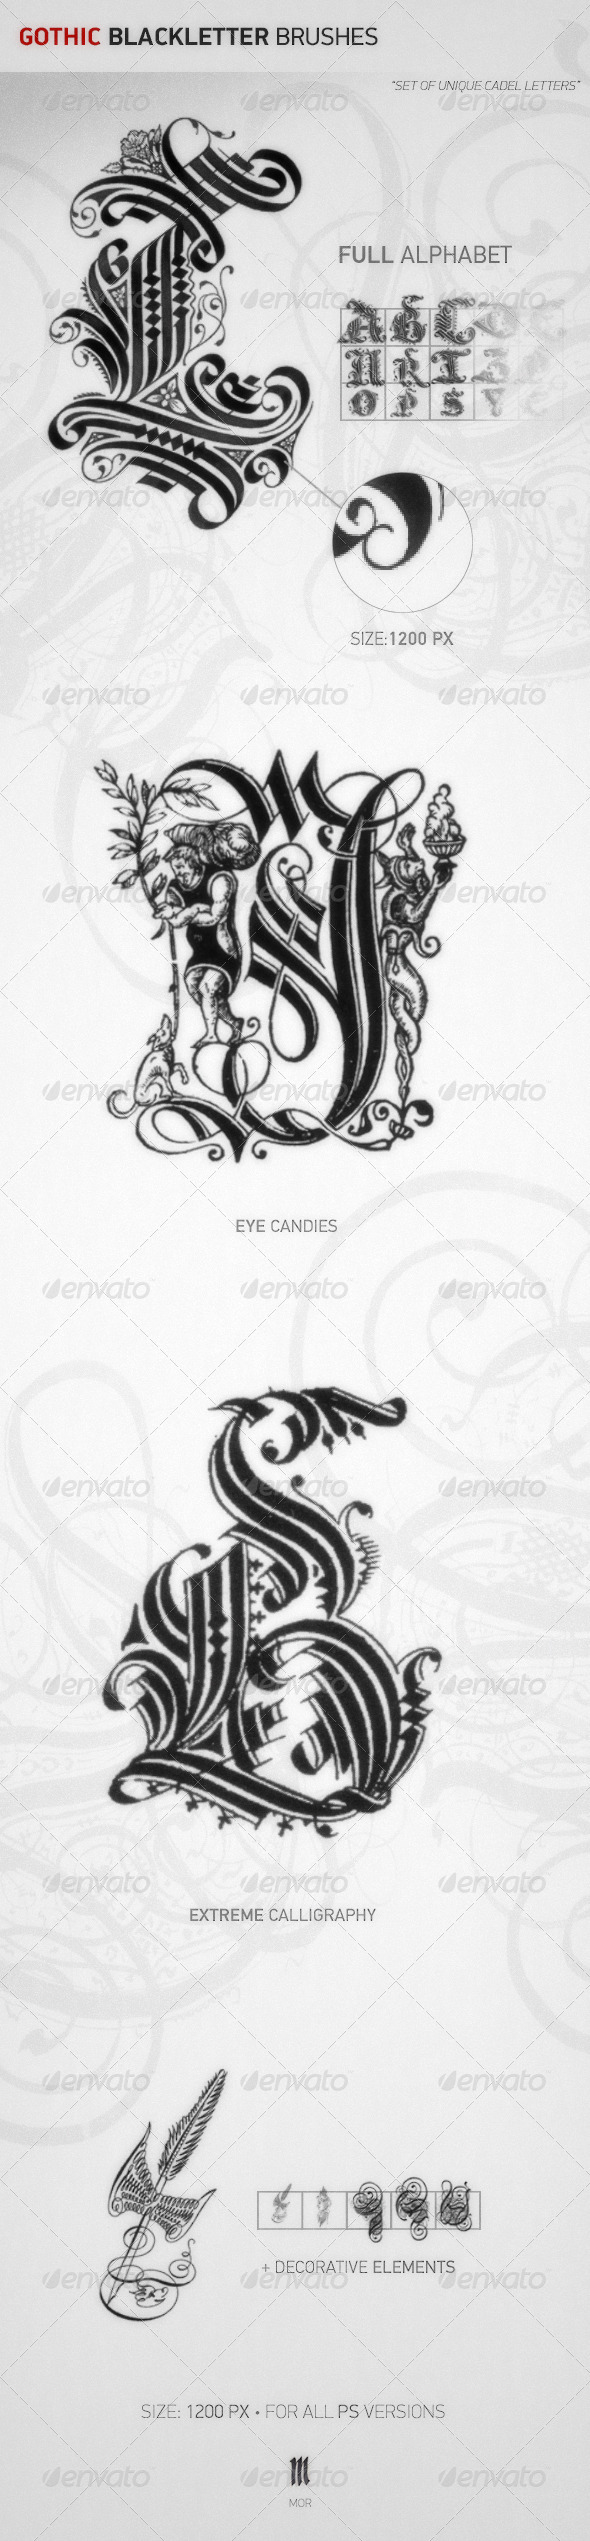 GraphicRiver Gothic Blackletter Brushes 7681527